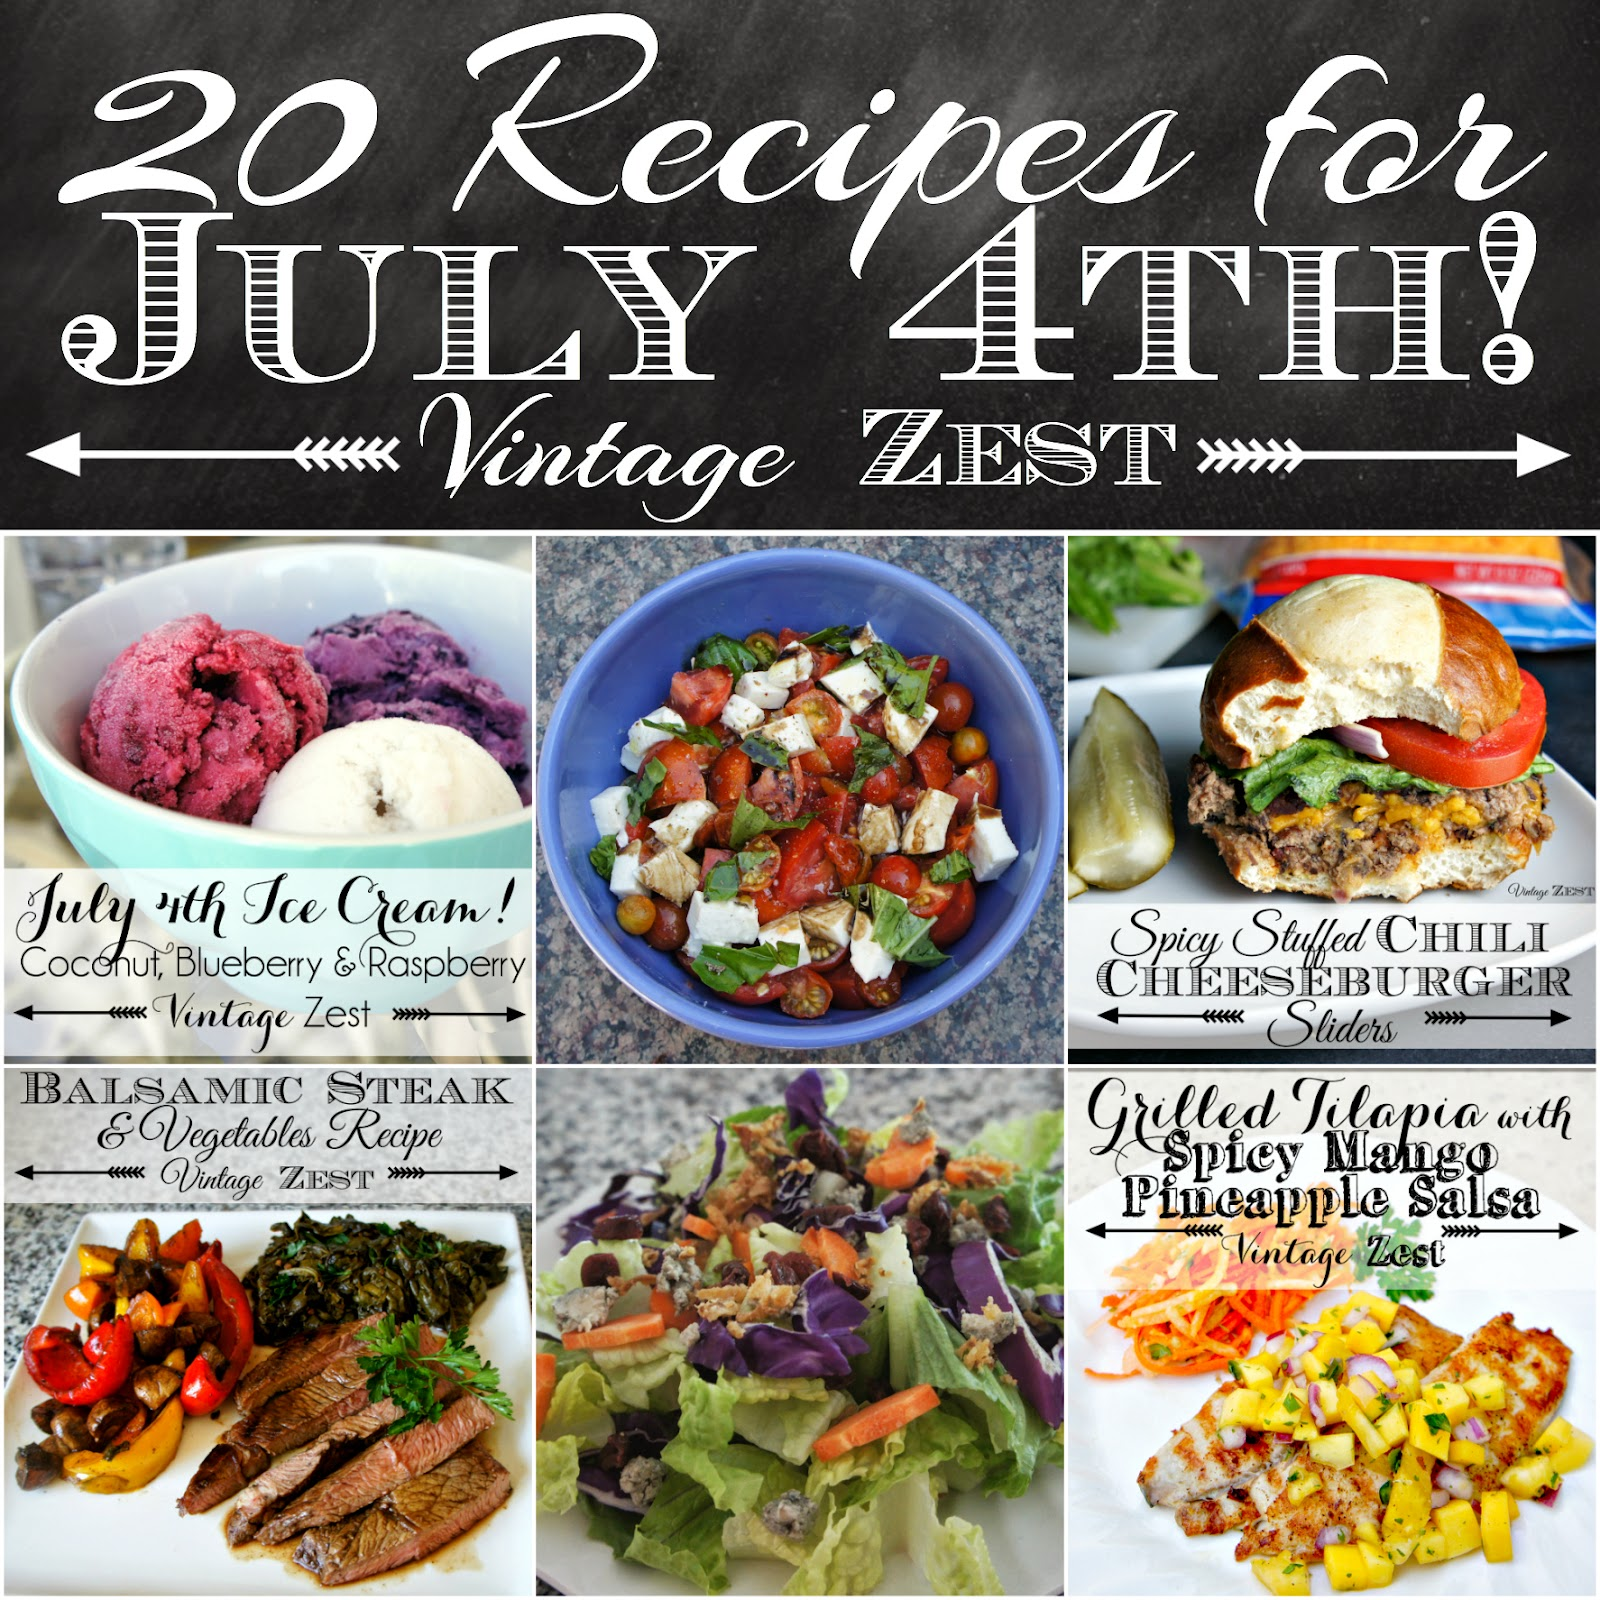 20 Recipes for July 4th! on Diane's Vintage Zest! #appetizer #entree #dessert